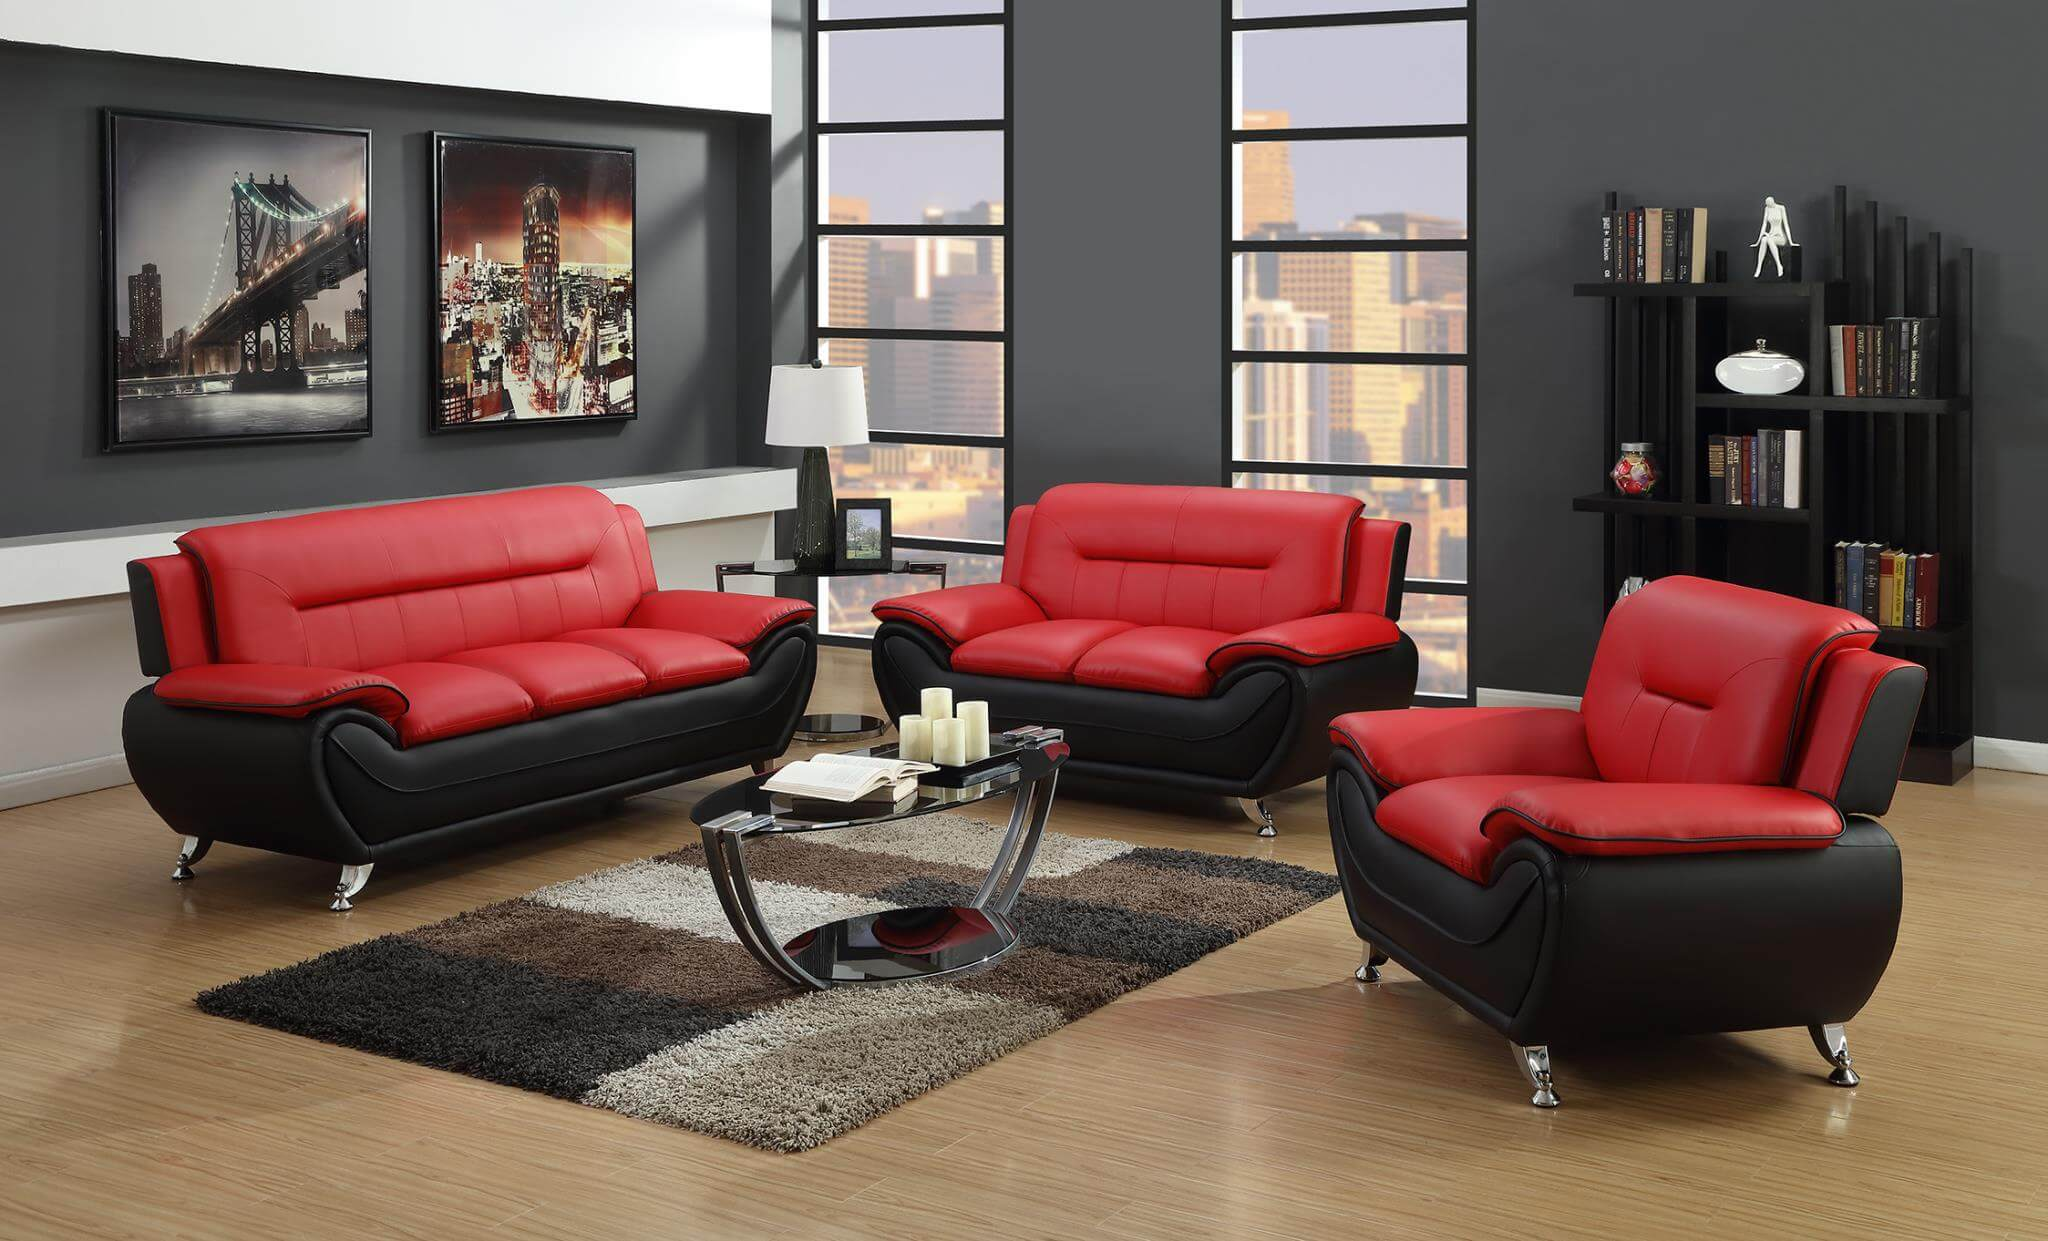 Choosing The Best Living Room Set